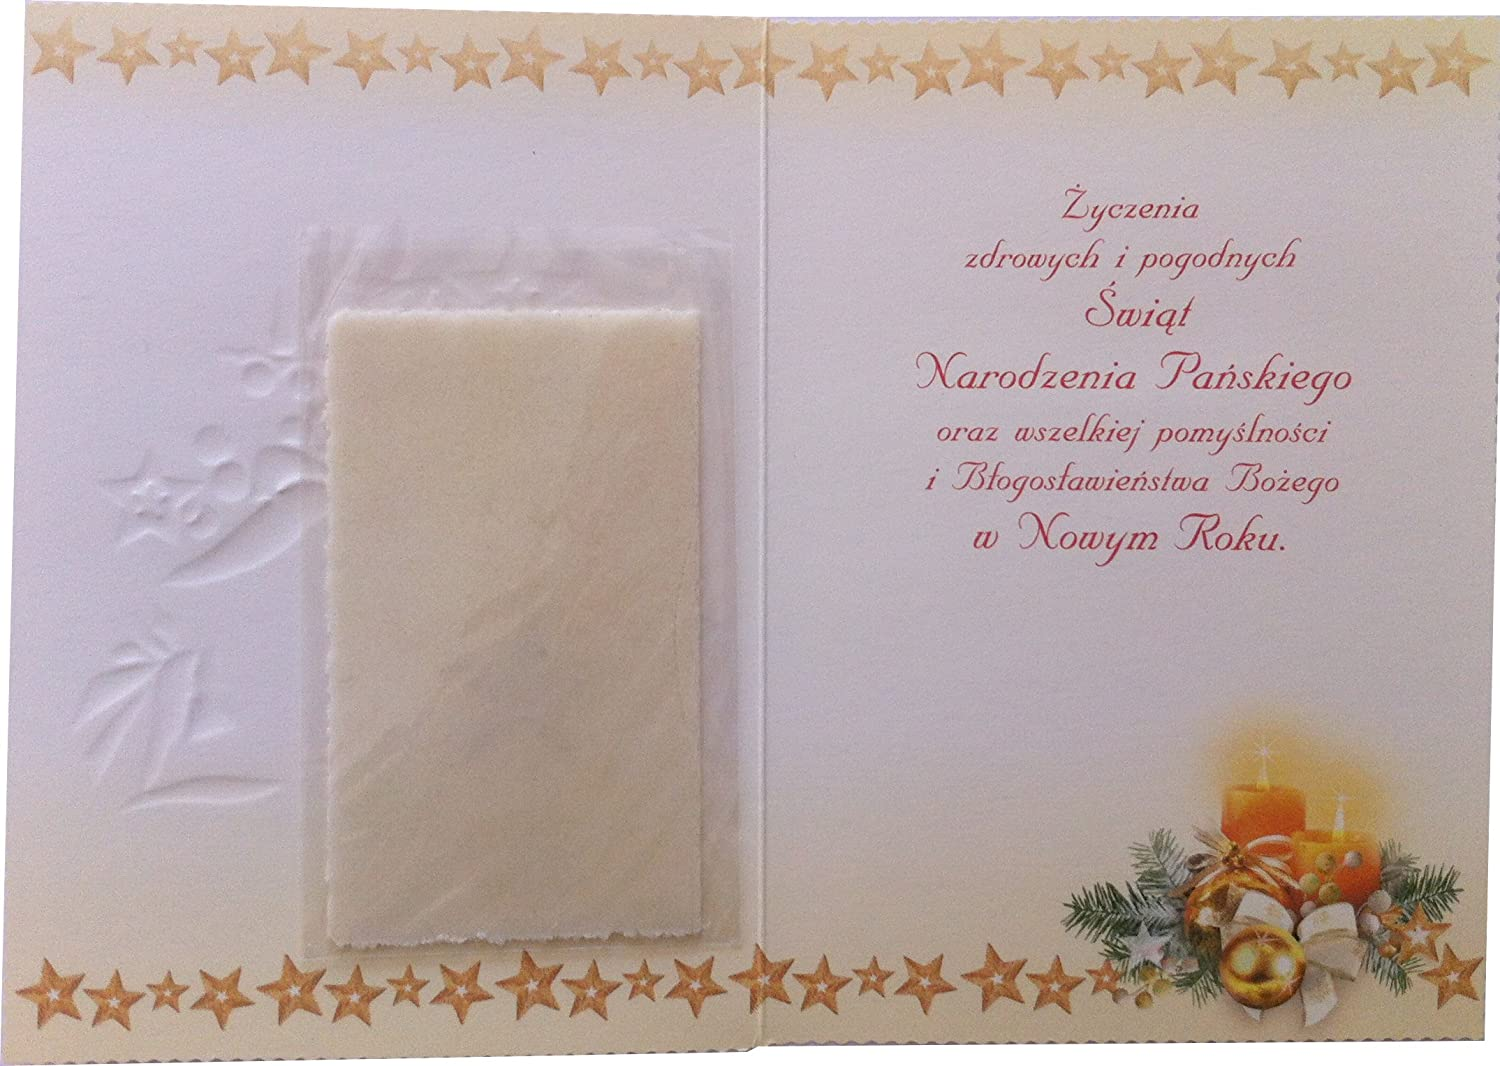 Amazon.com : Religious Polish Christmas Greeting Cards with Wafers ...